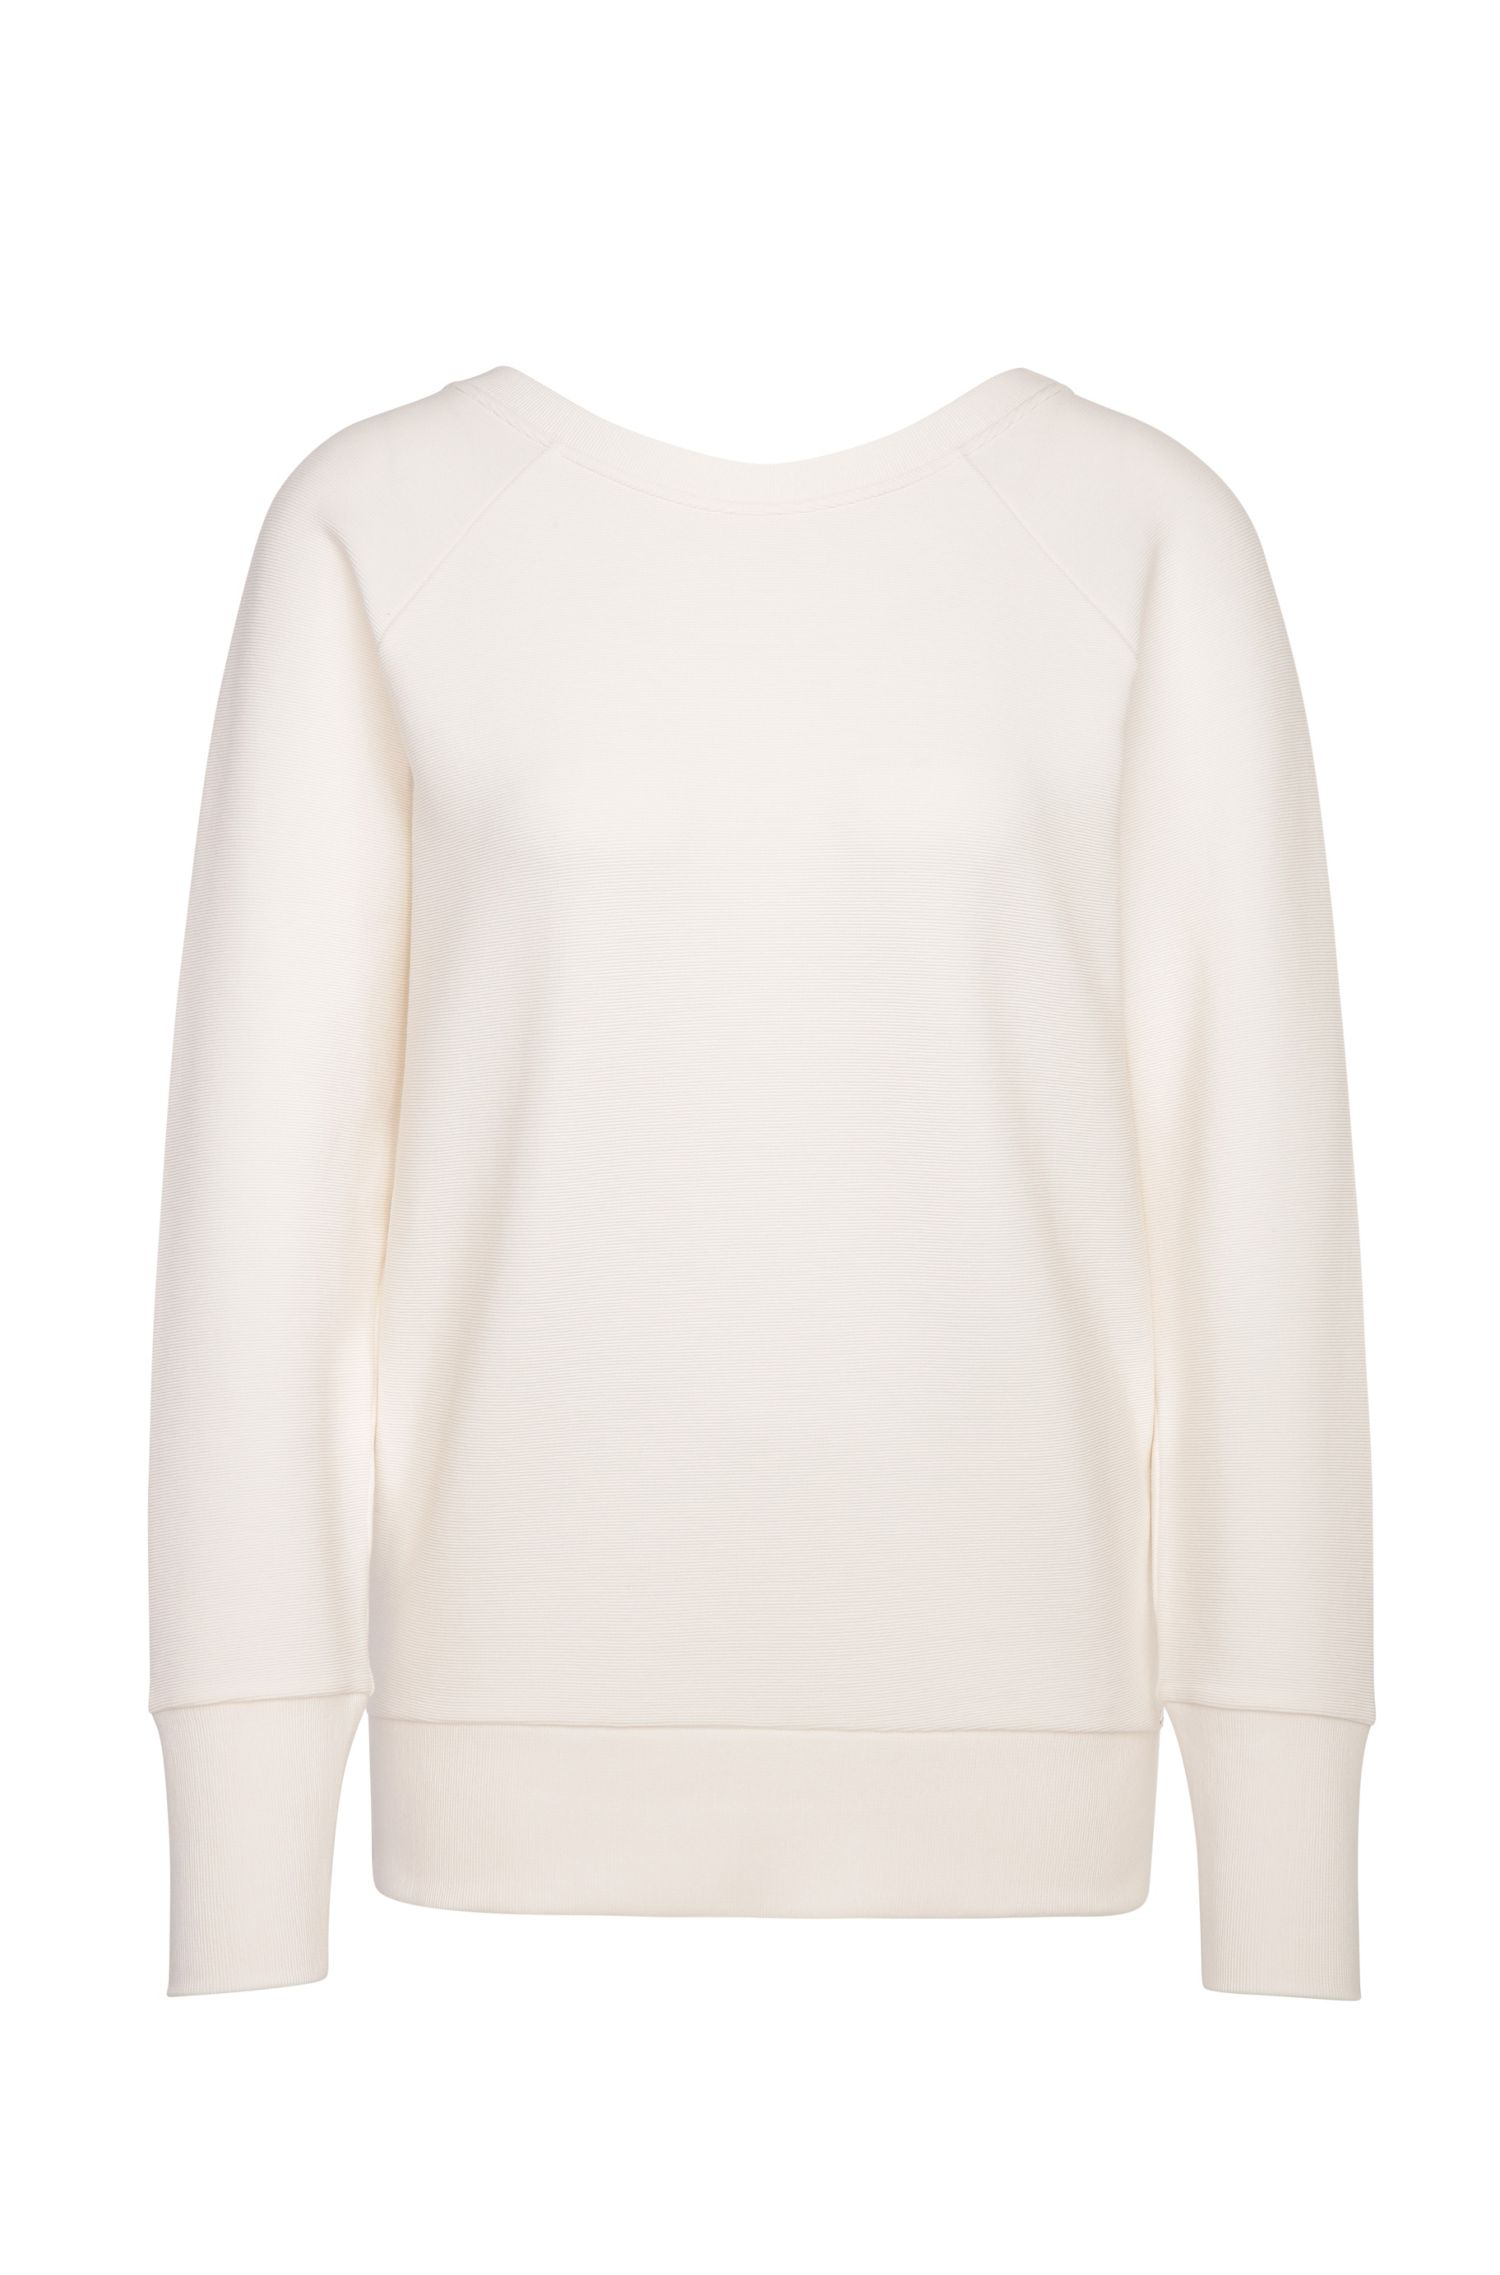 'Tawow' | Stretch Cotton Blend Ribbed Sweatshirt